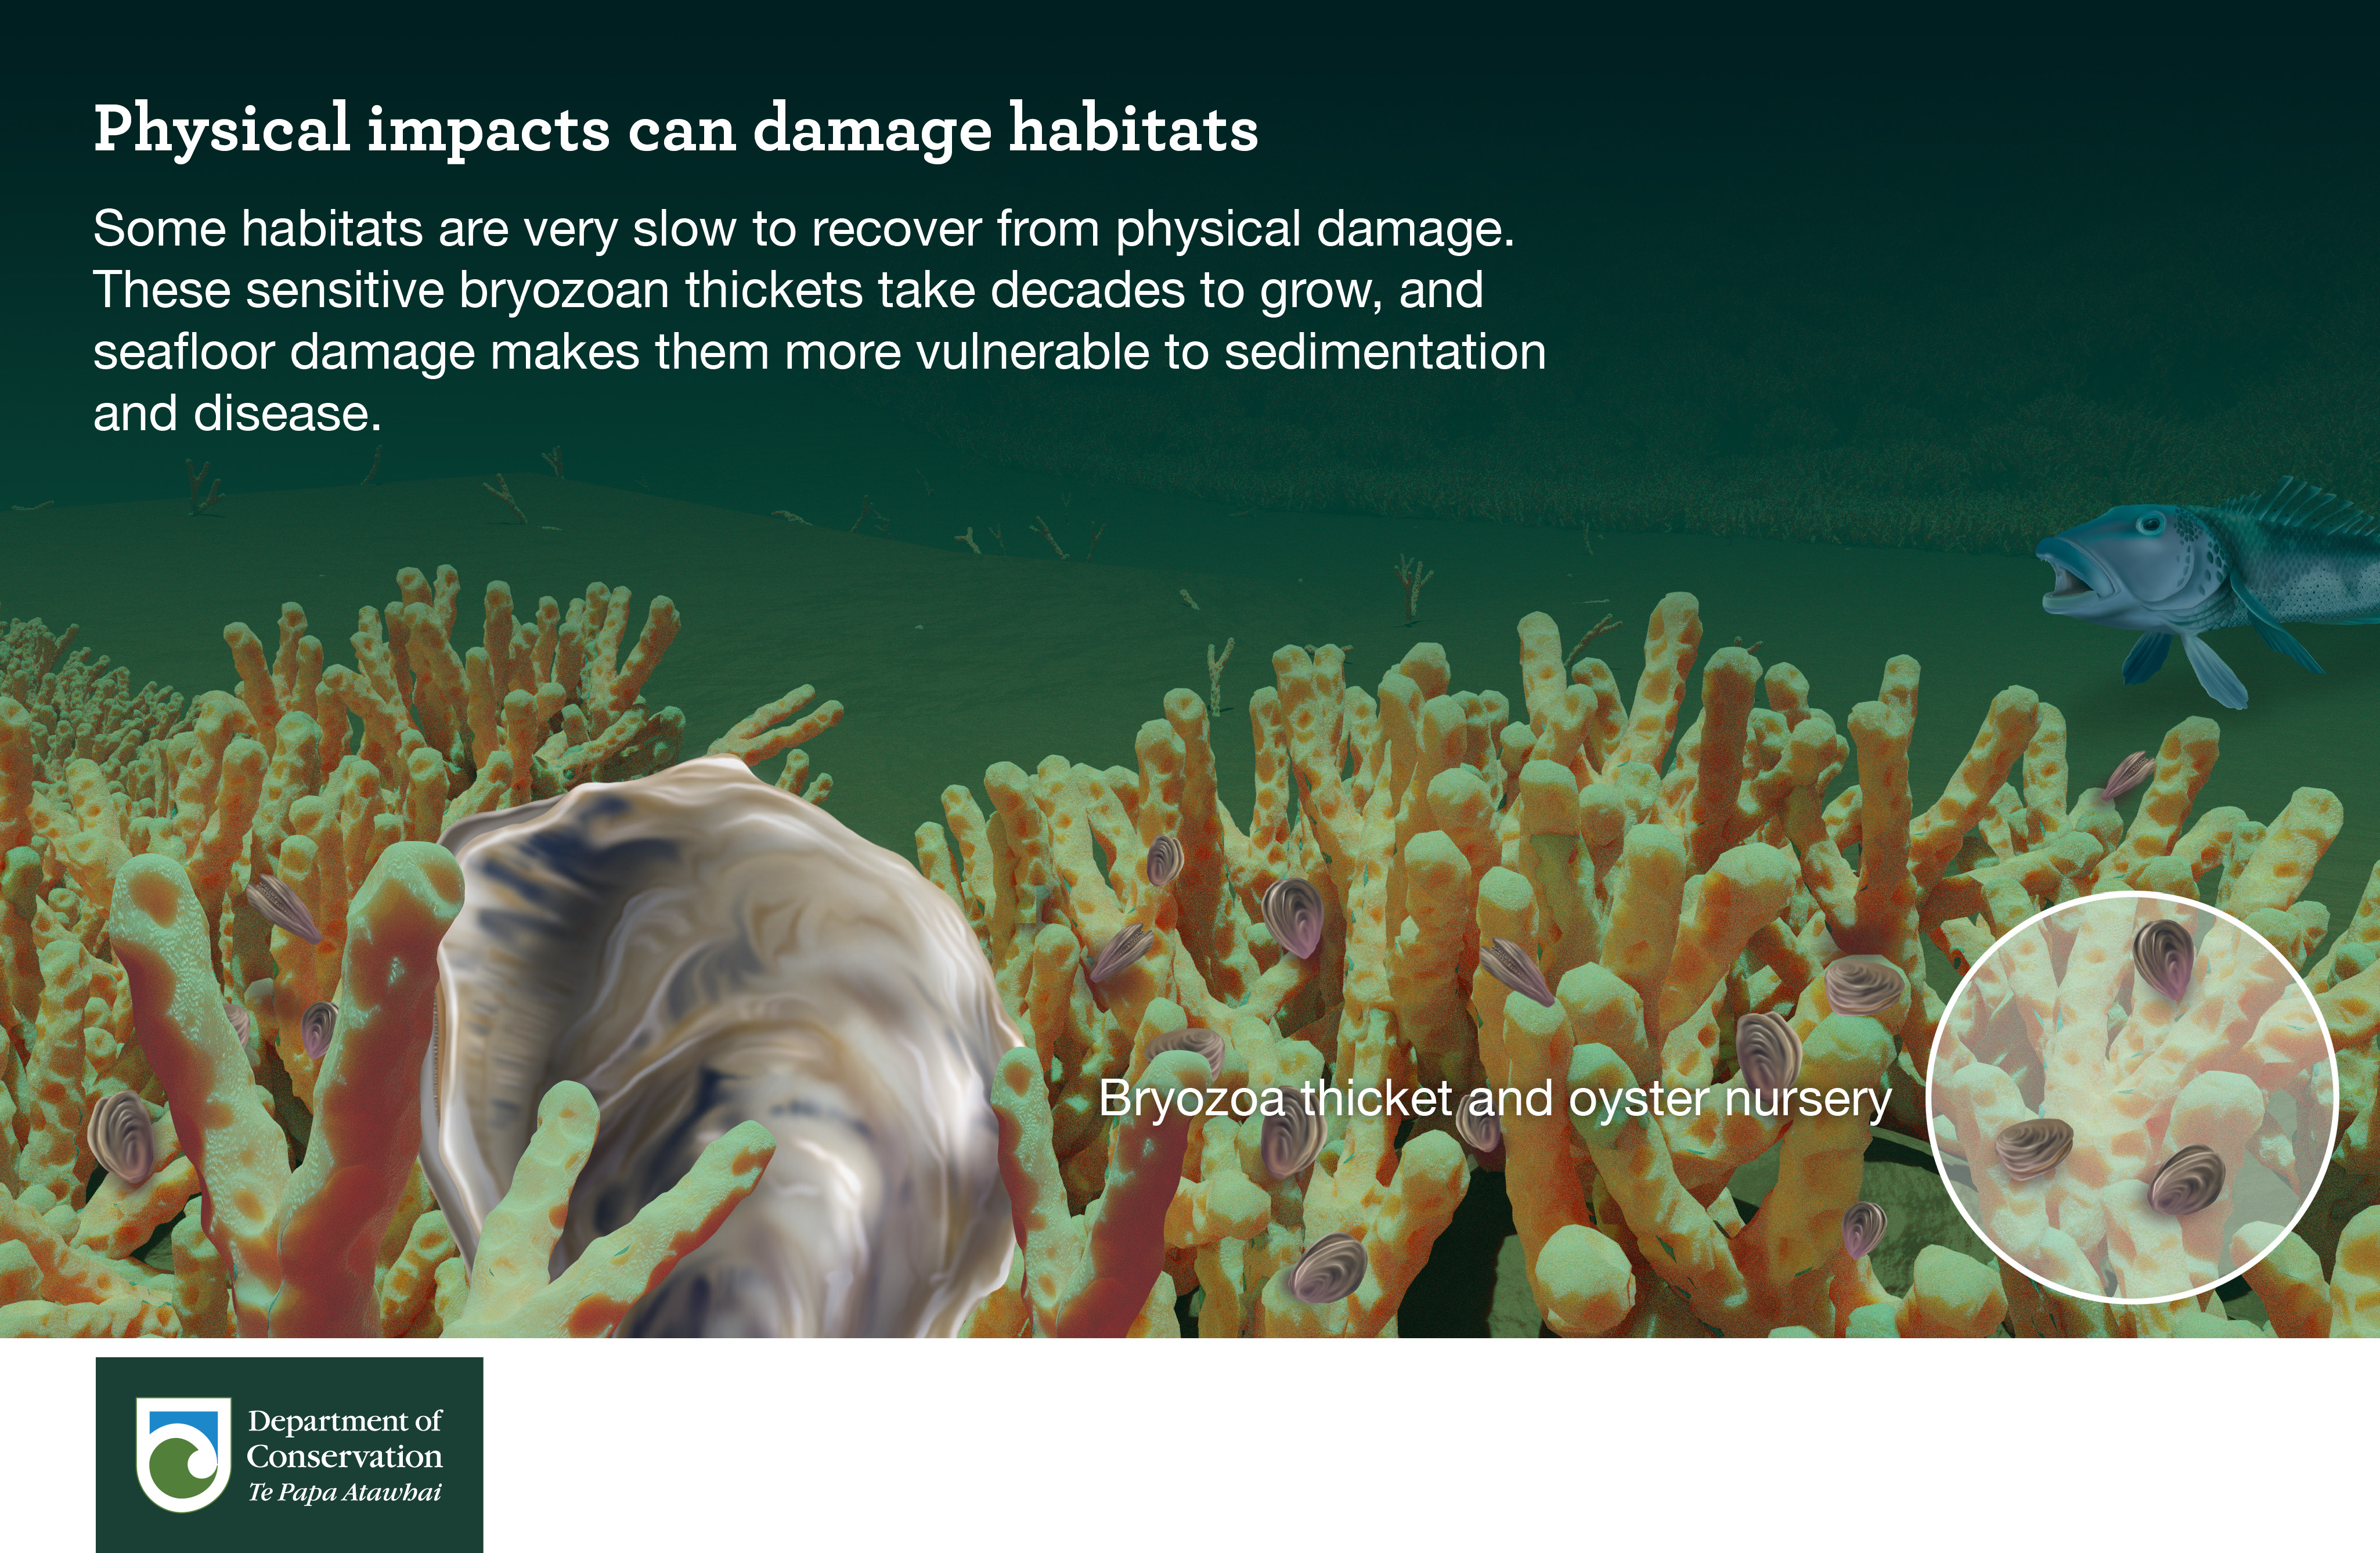 Physical impacts can damage habitats